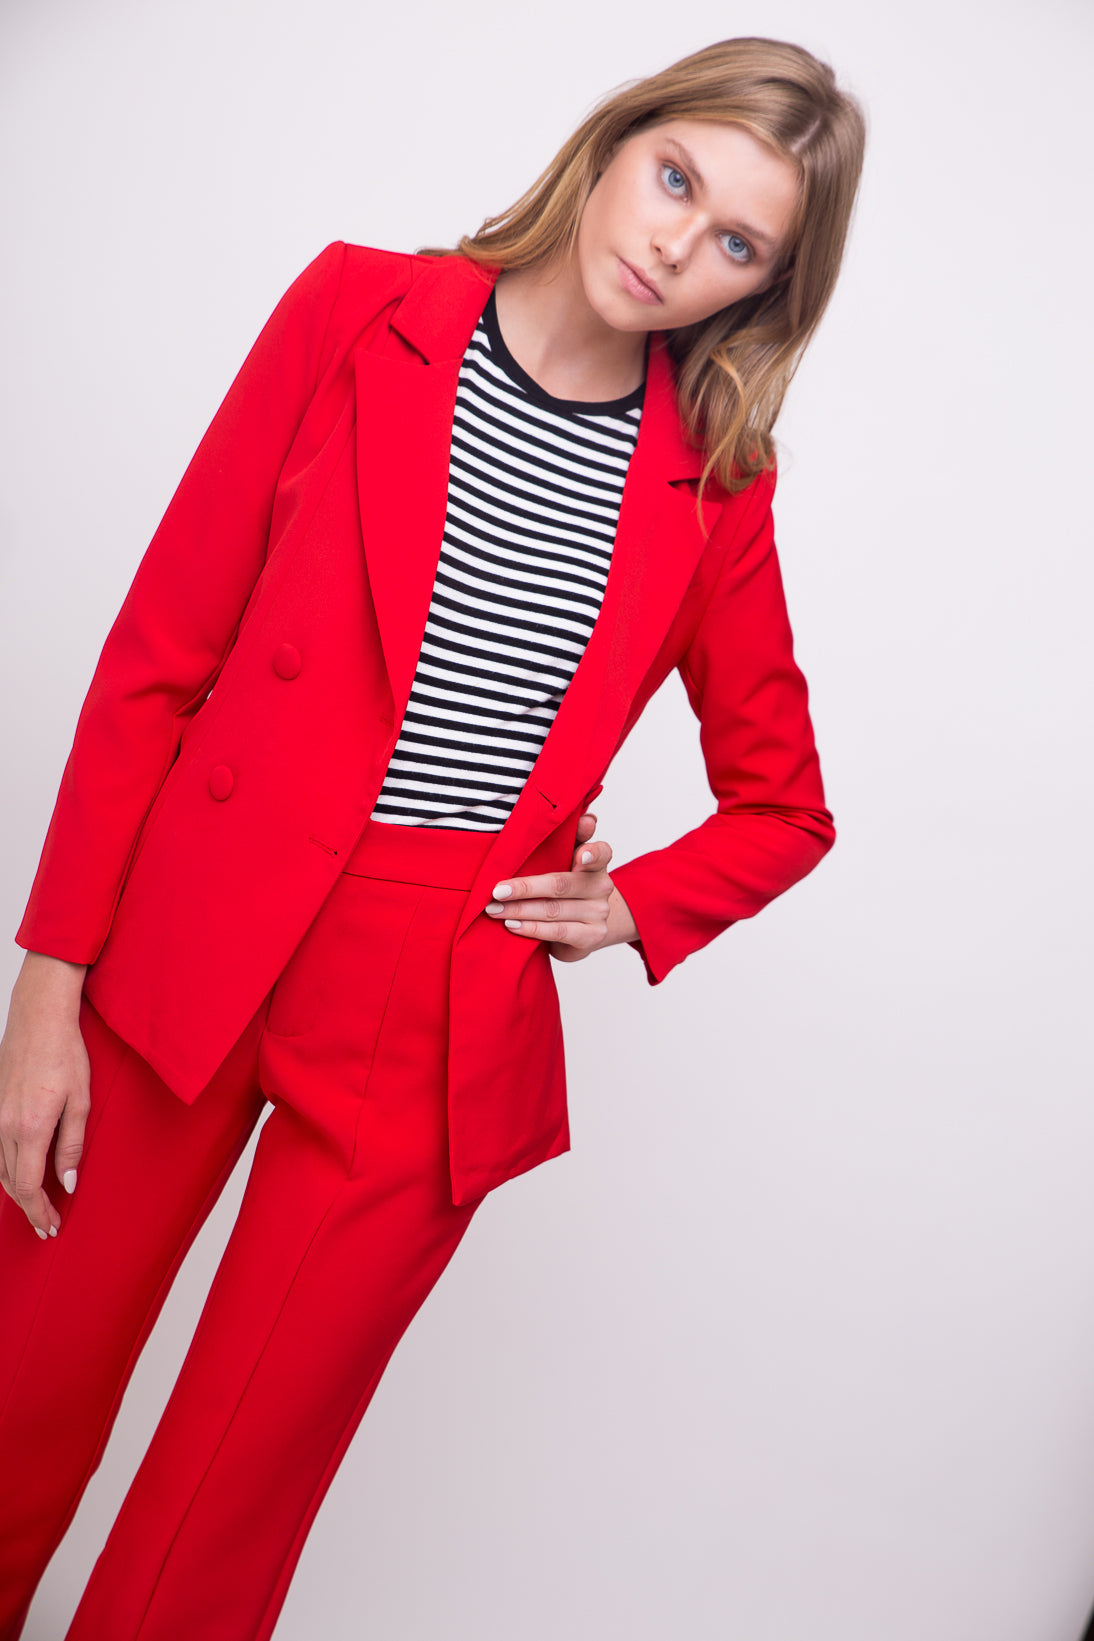 Hot red tailored suit jacket.